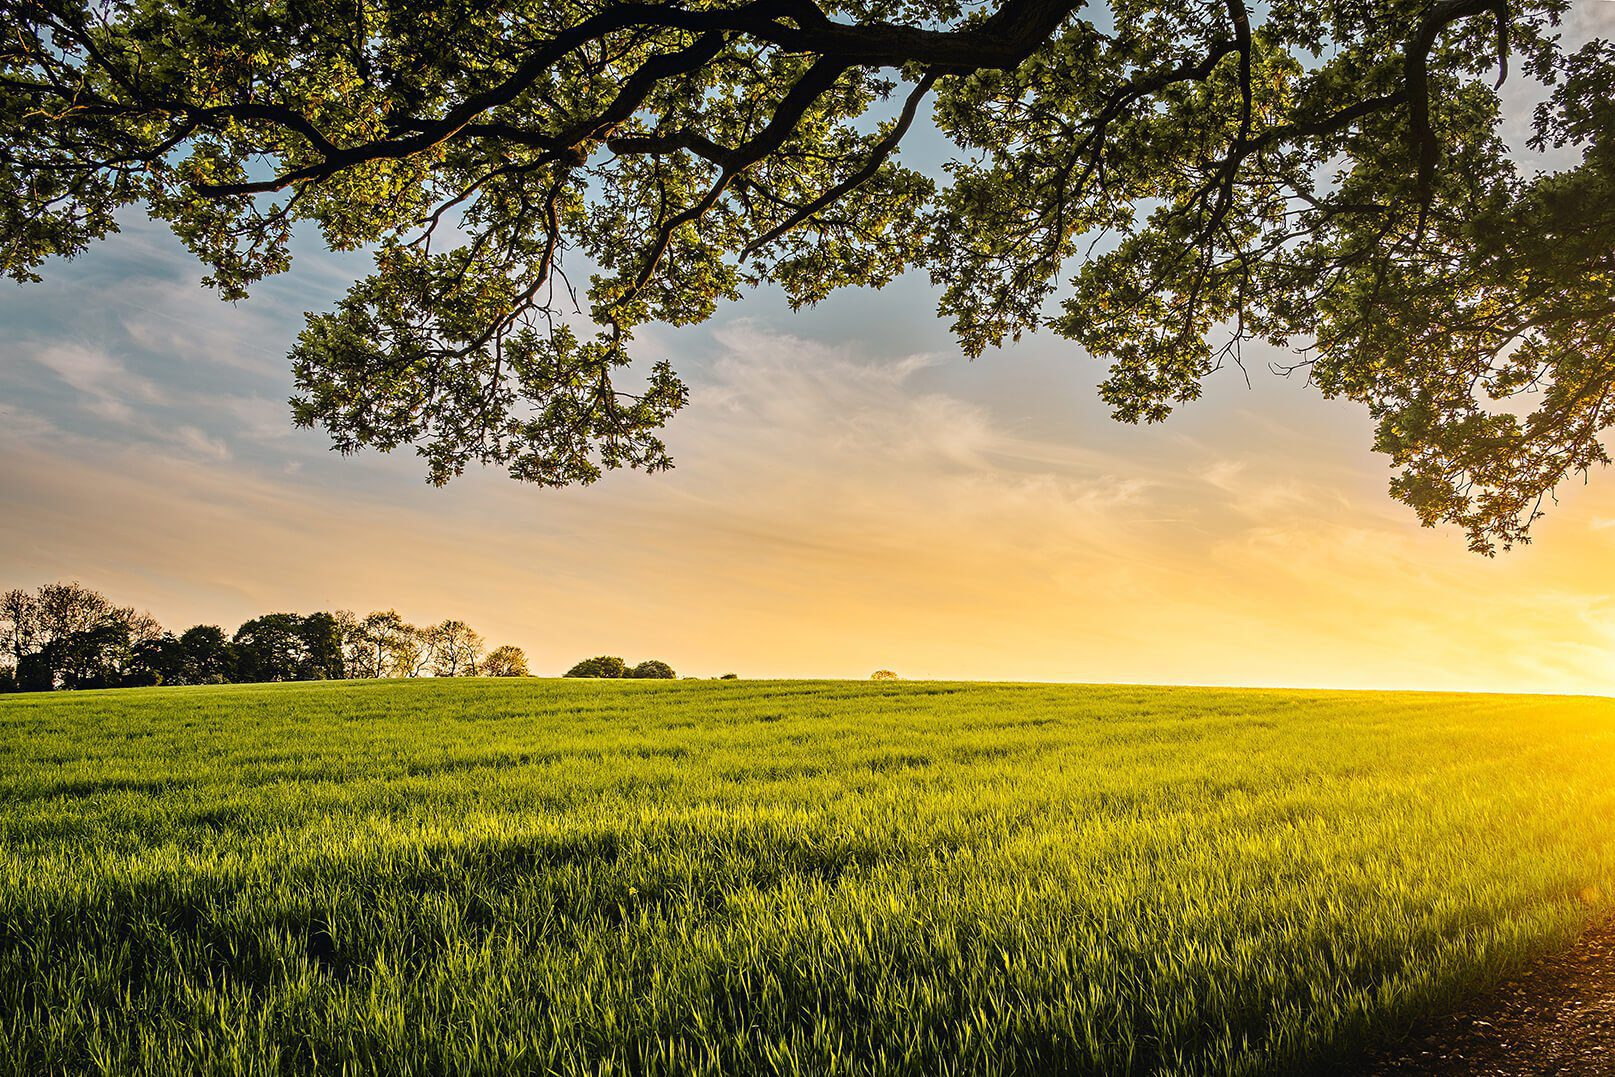 you are so loved sunset grassy field